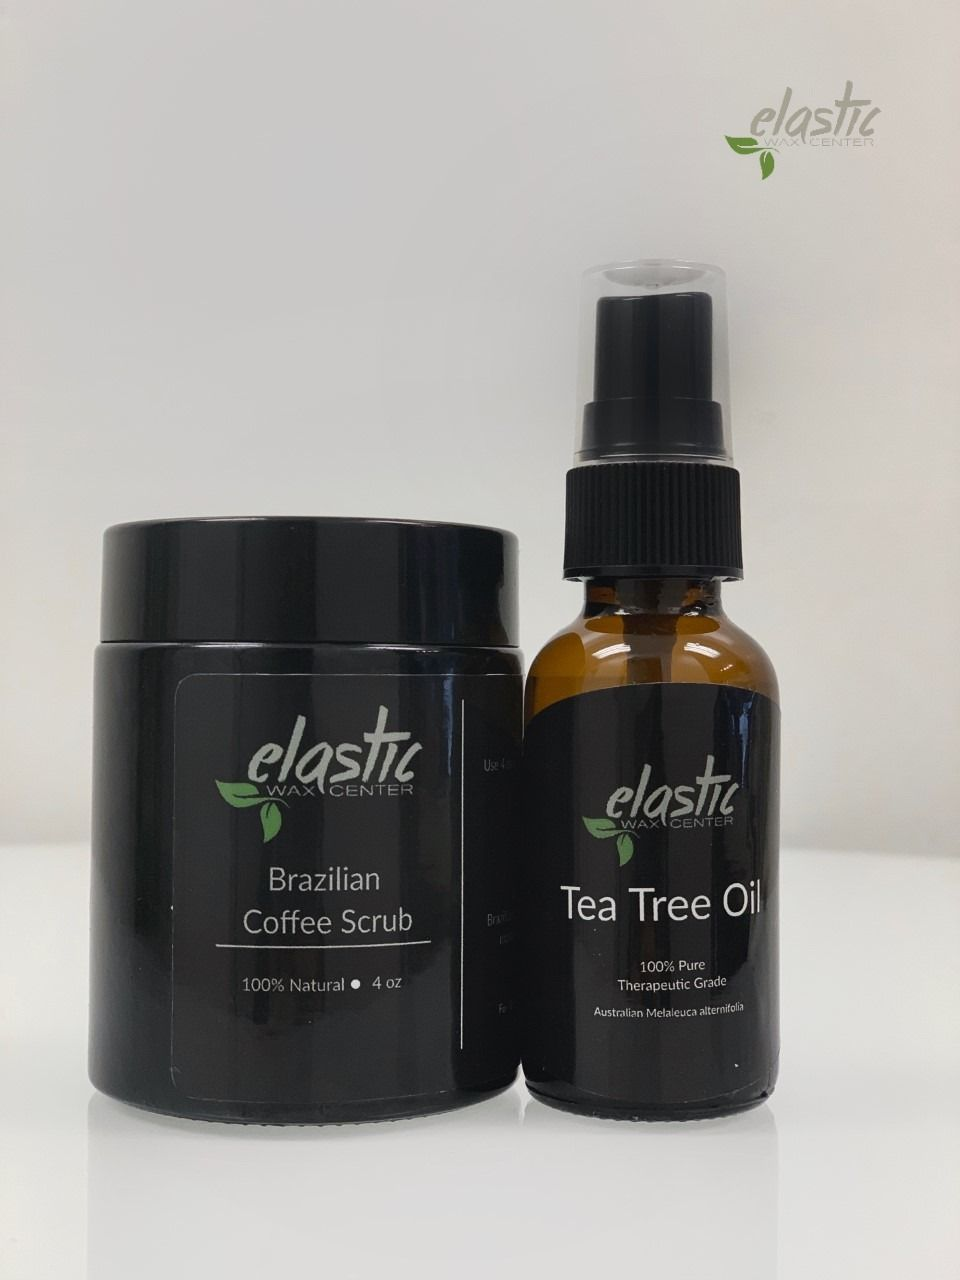 Wax Aftercare Kit in 2020 Aftercare, Wax, Tea tree oil